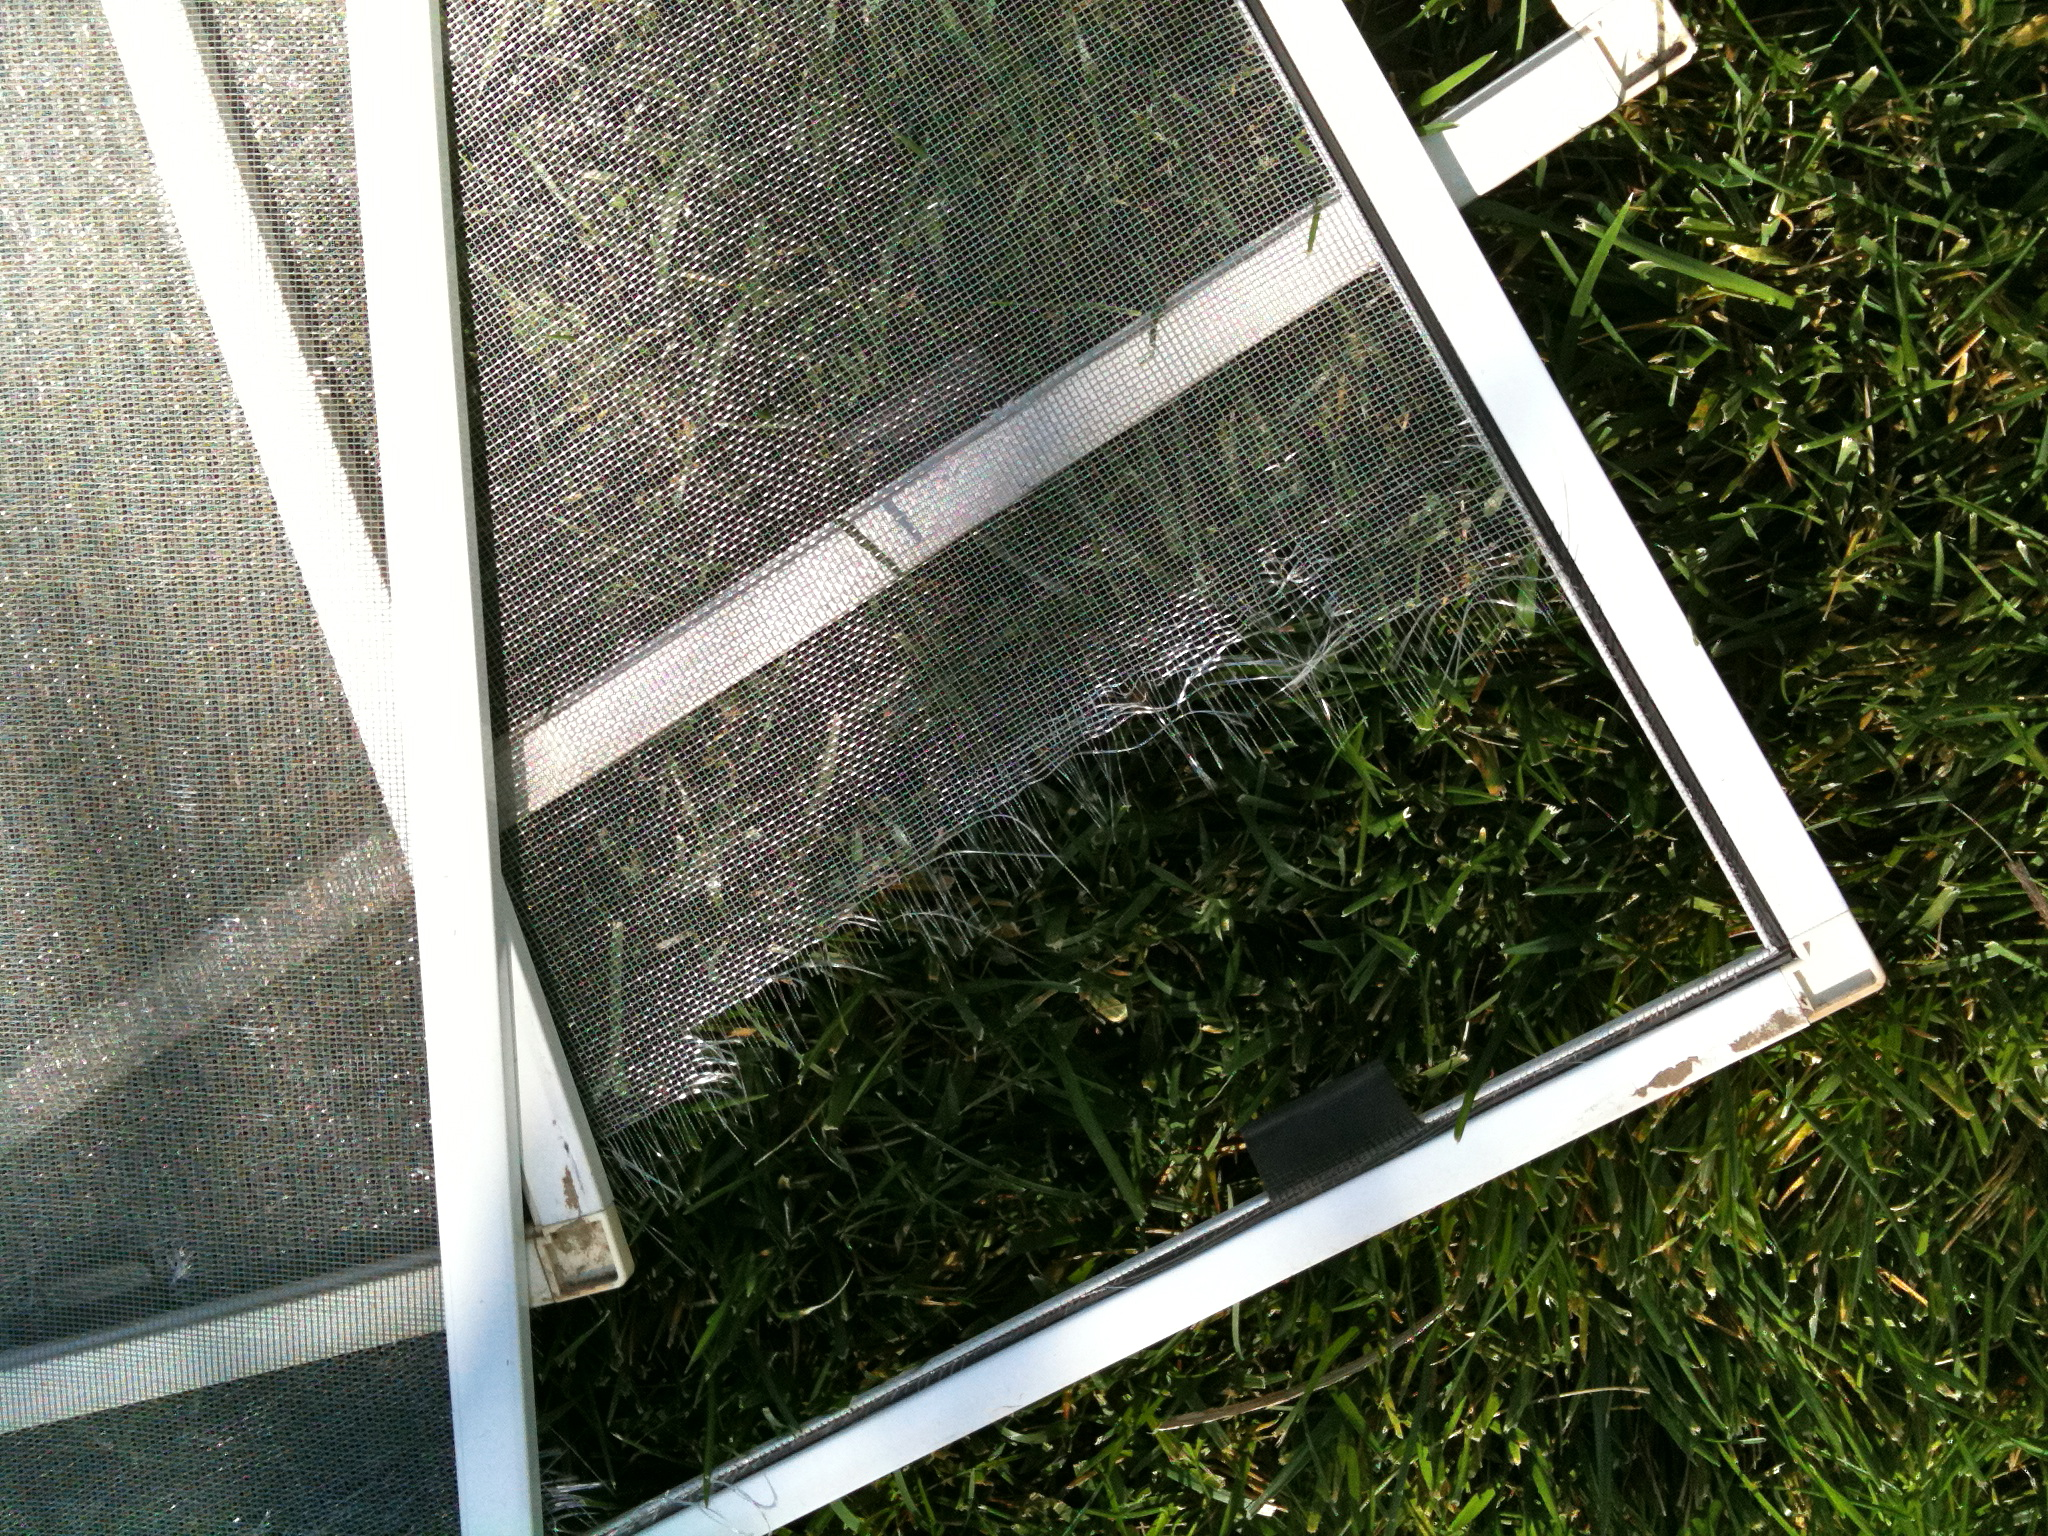 replacement windows make replacement window screen frame